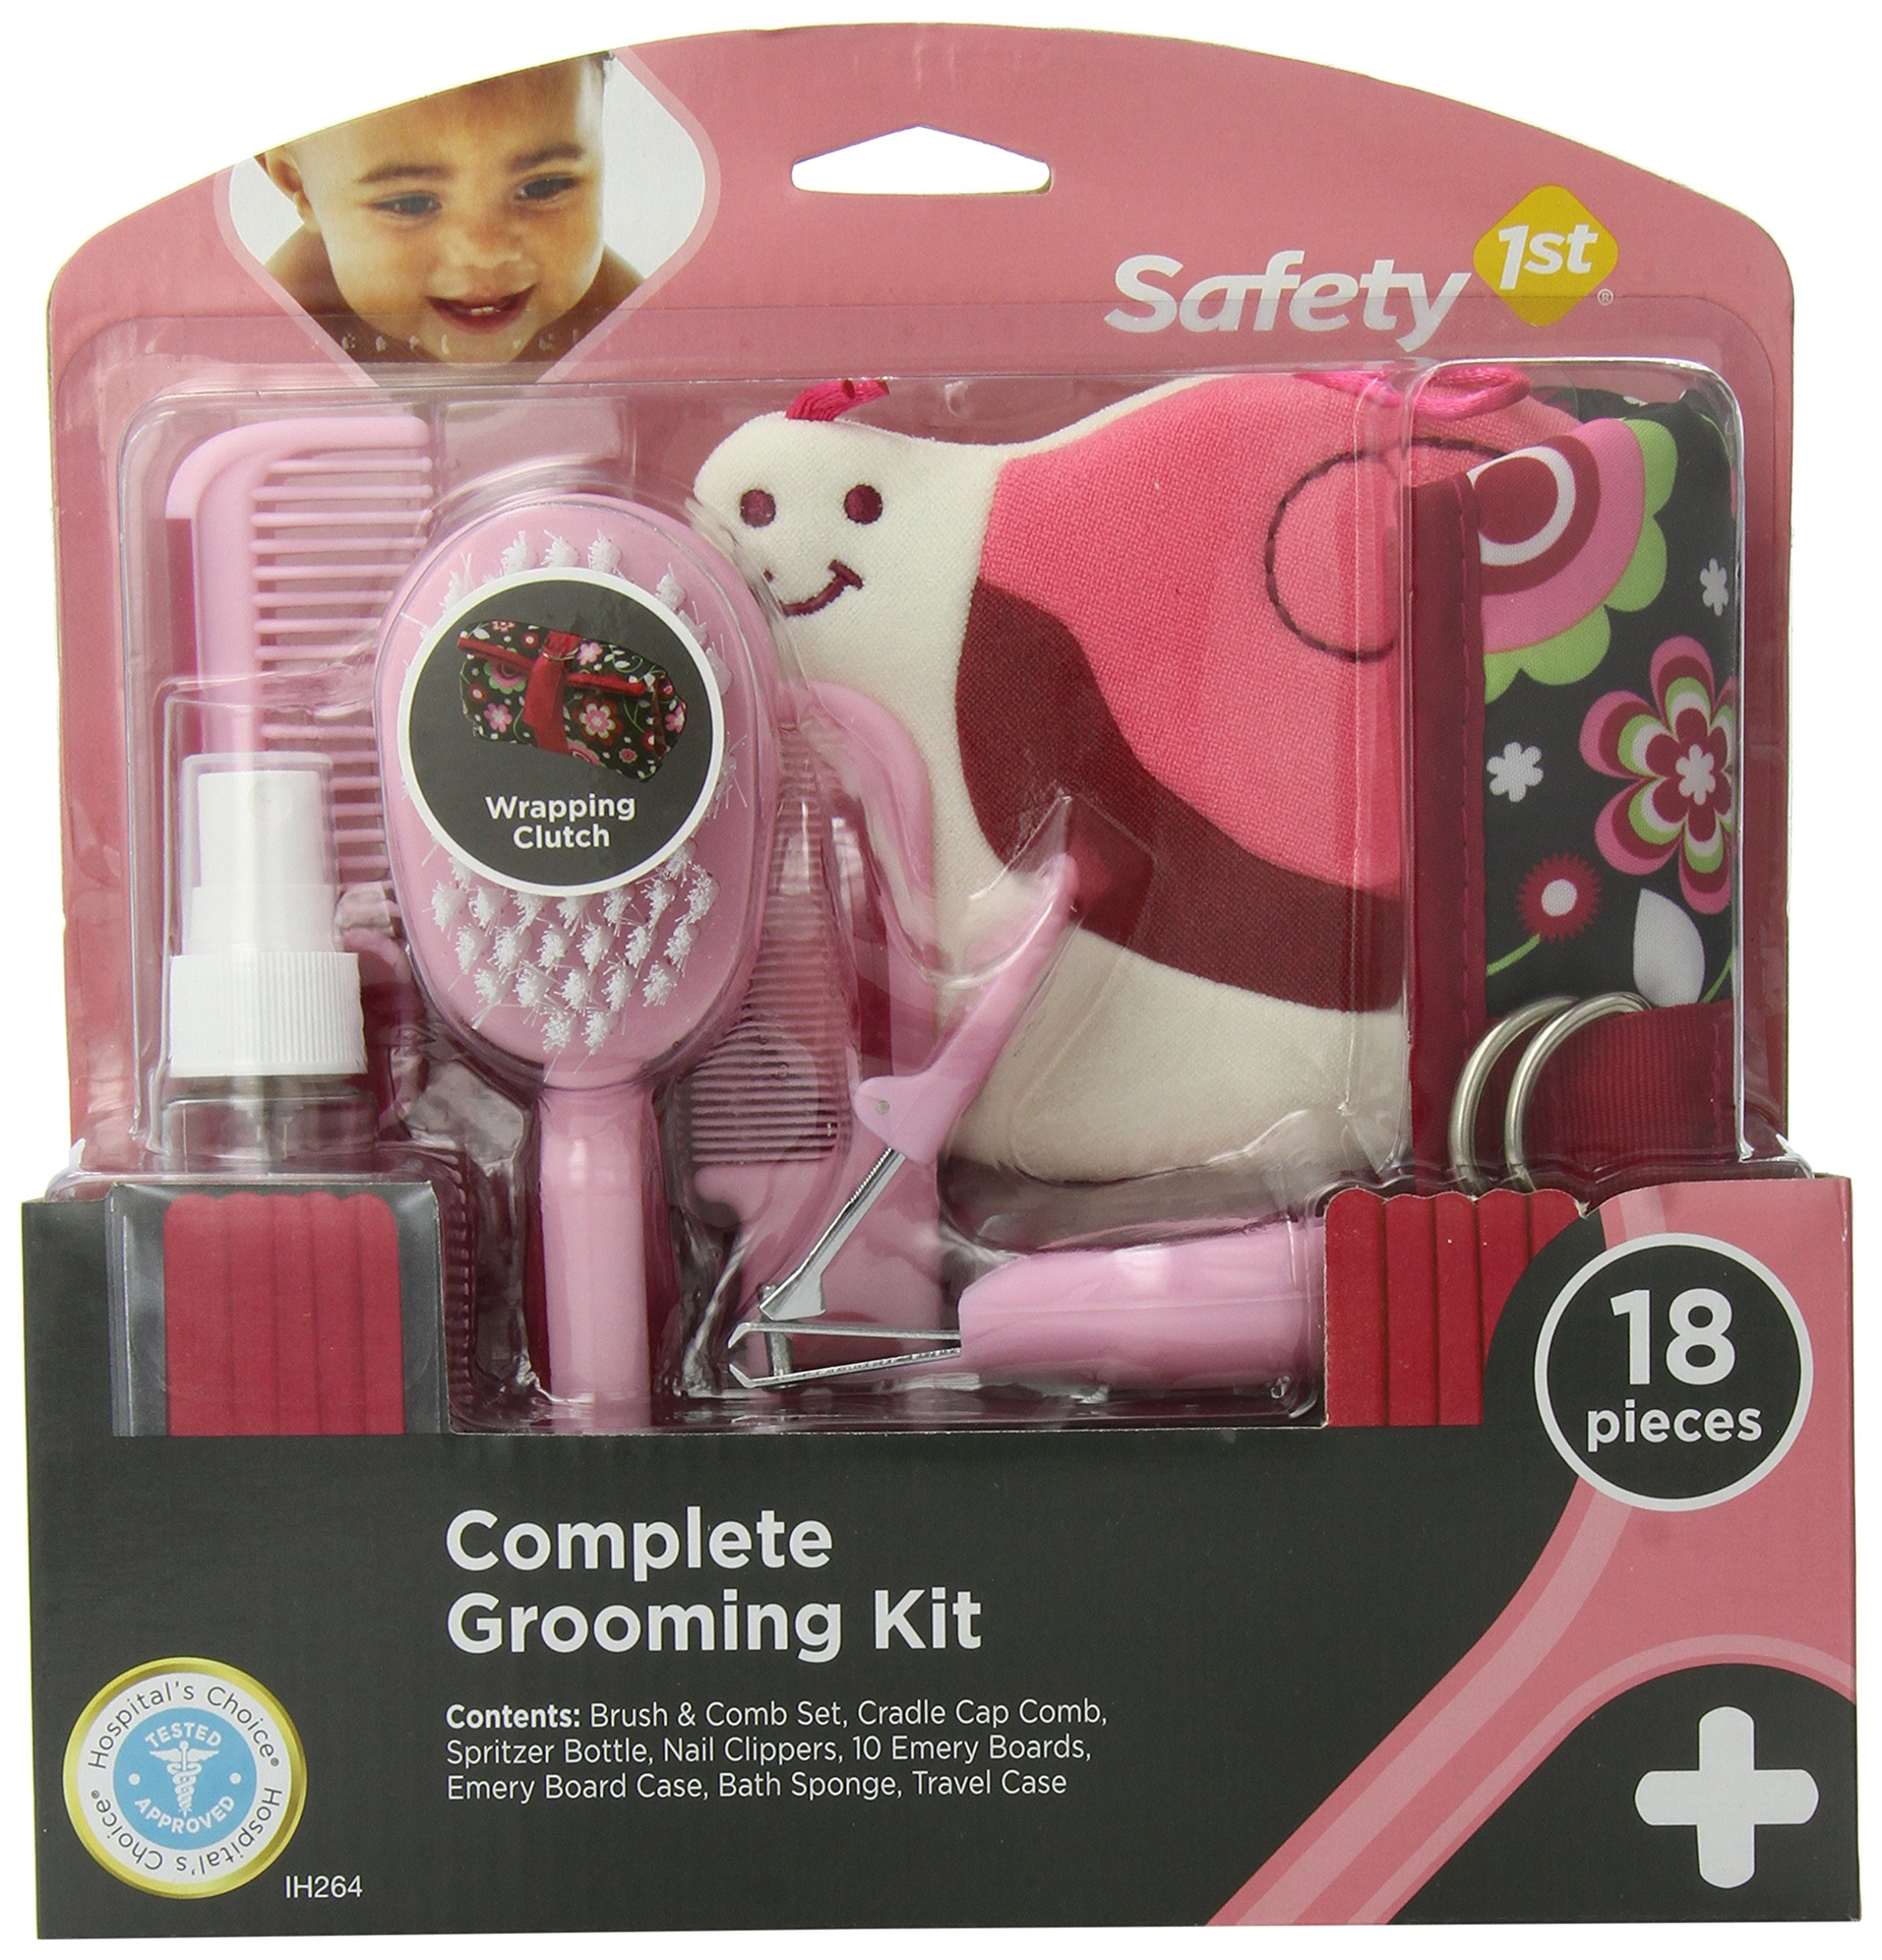 Safety 1st Complete Grooming Kit, Raspberry